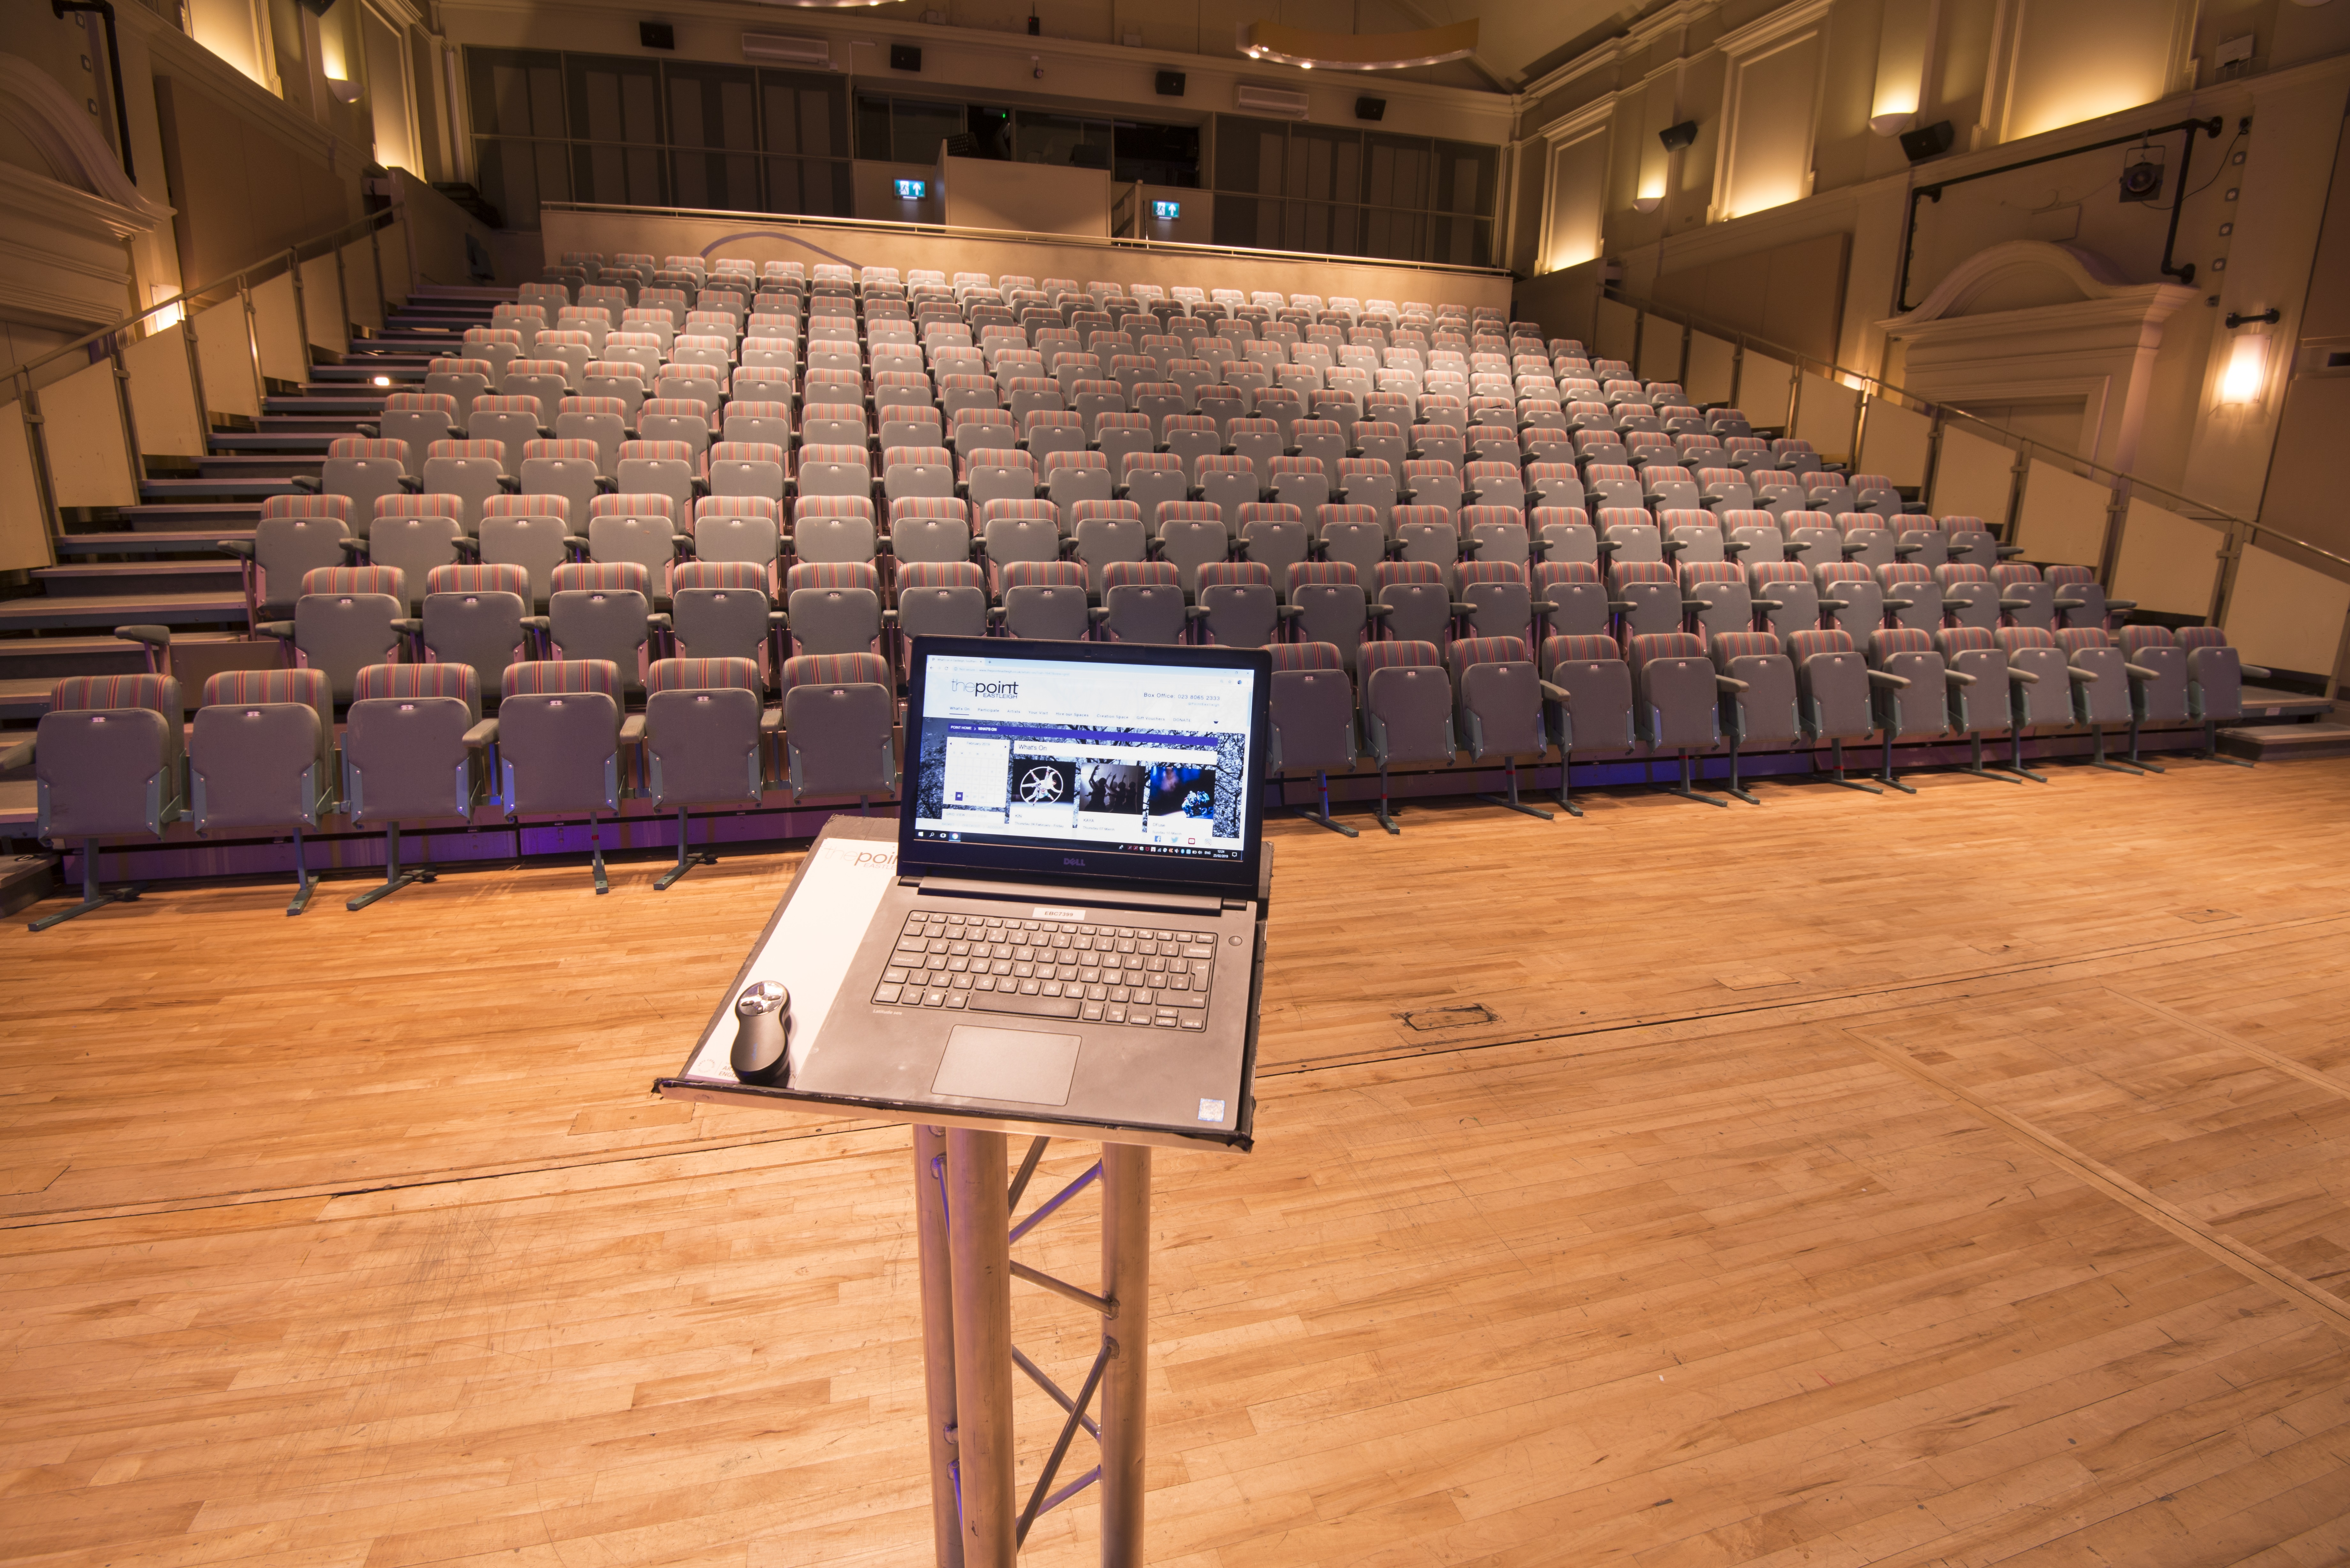 Laptop on stand in front of main auditorium seating